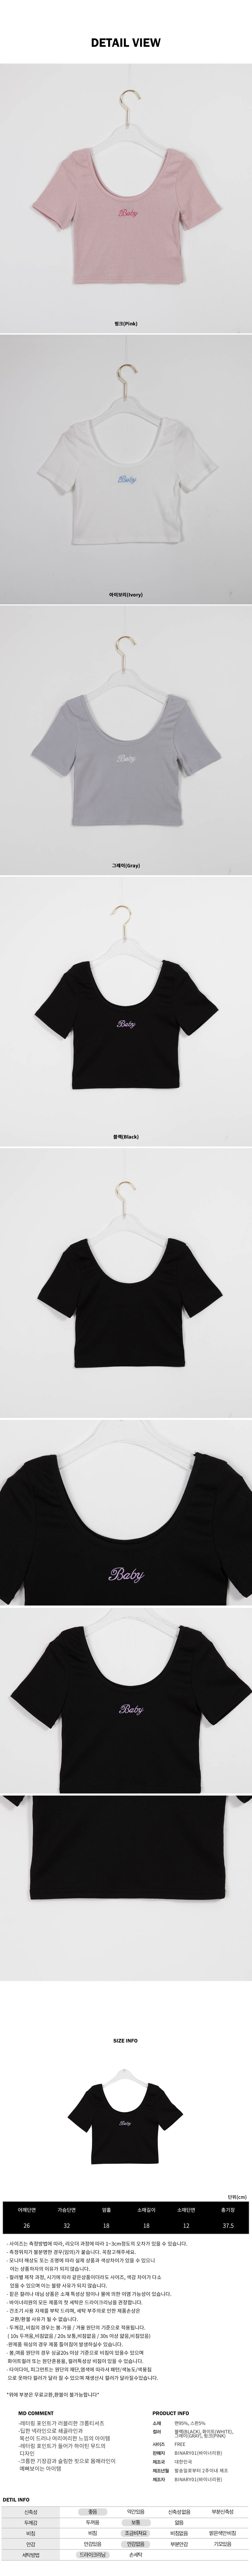 Cropped baby T-shirt